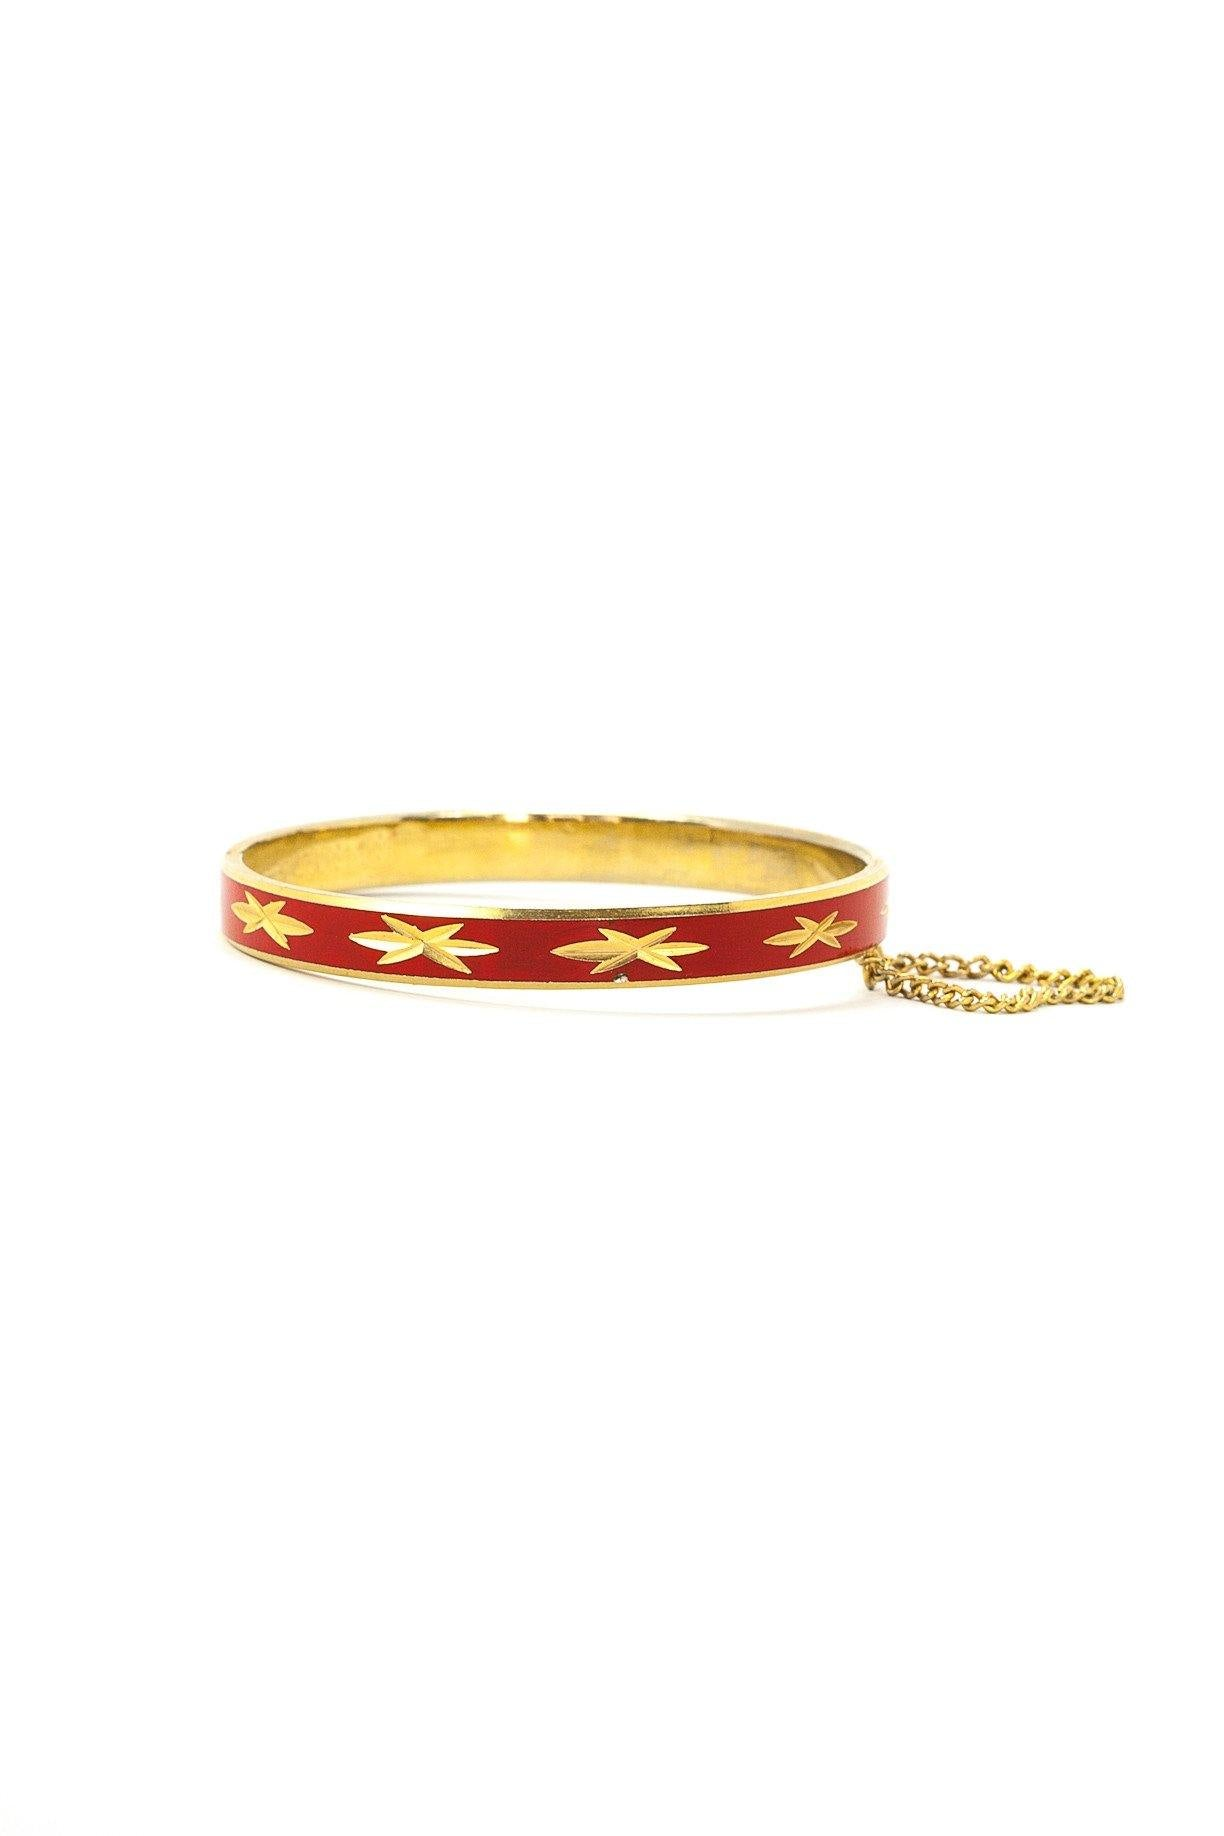 50's__Vintage__Red Enamel Star Bangle